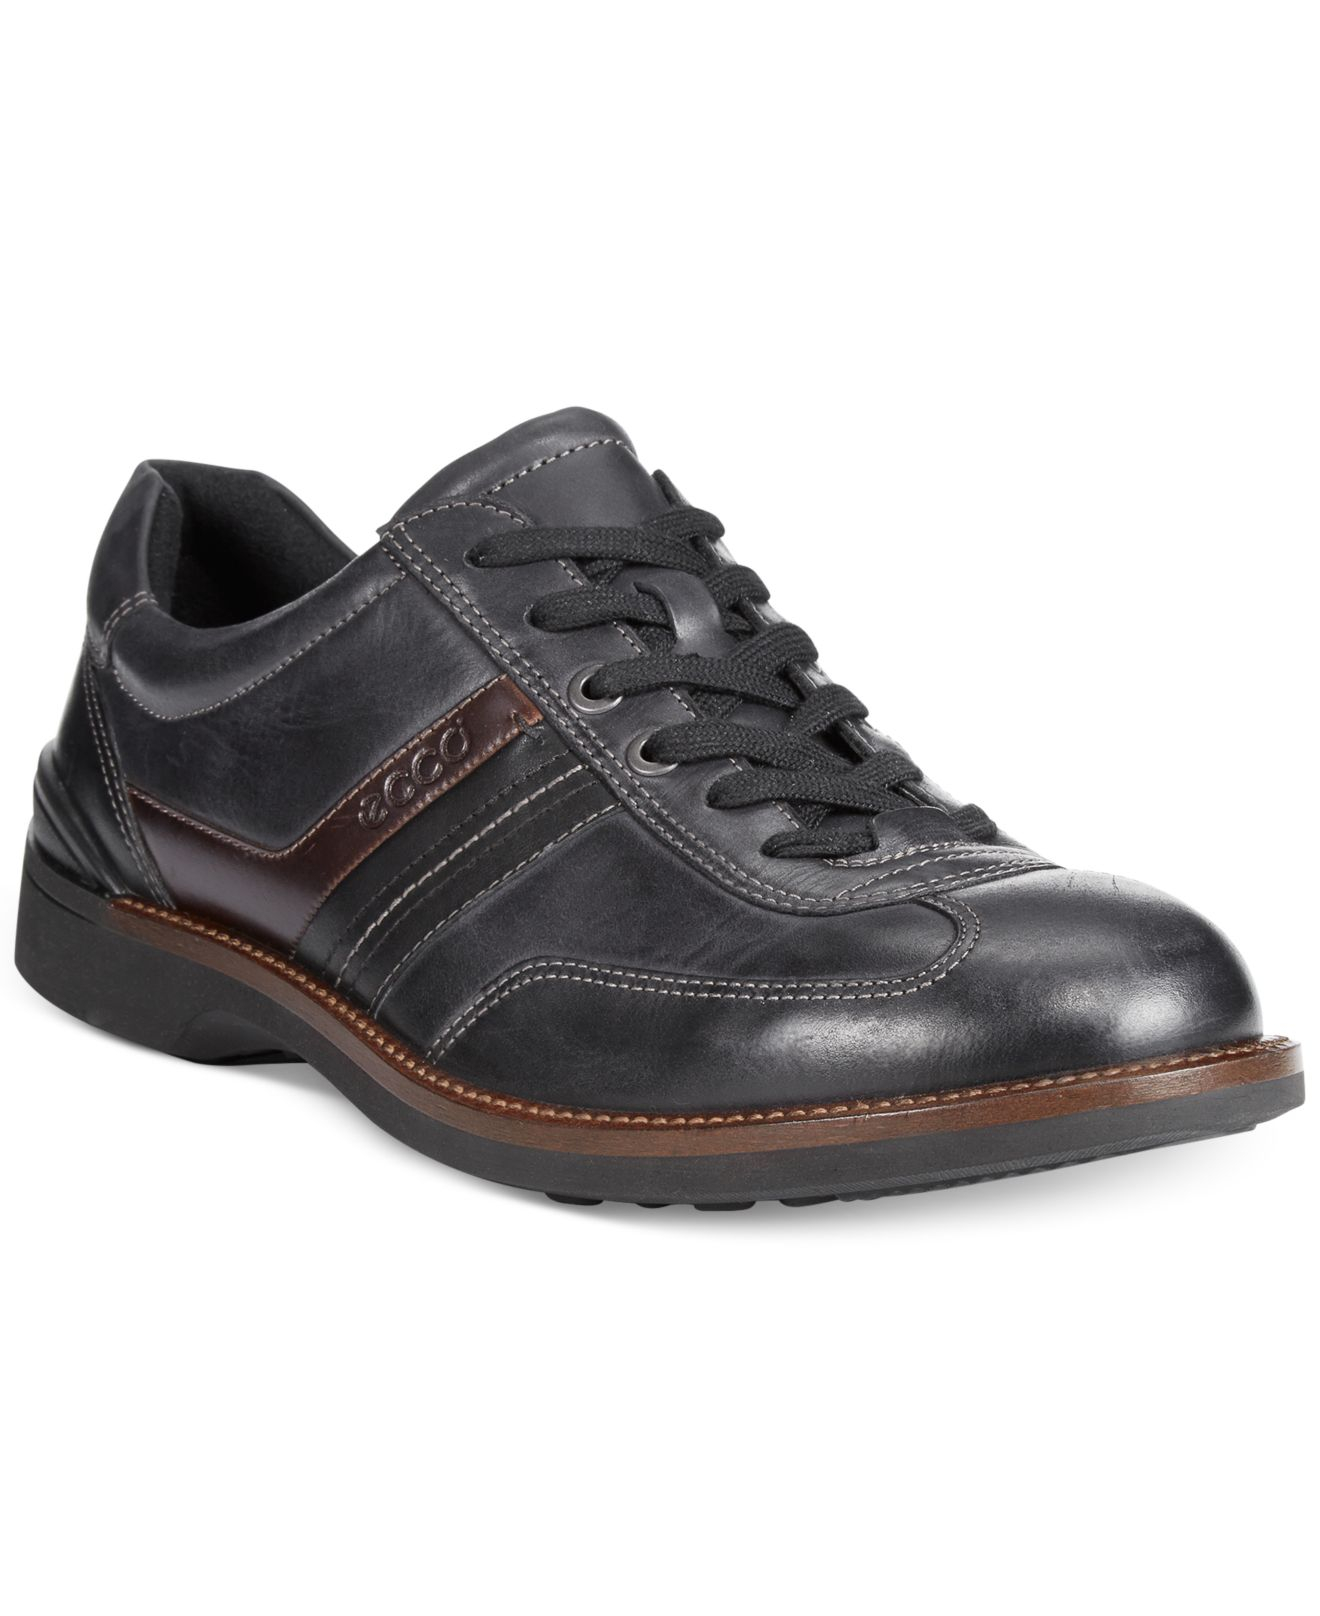 6a7cbed43b Lyst - Ecco Fenn Lace-up Shoes in Black for Men